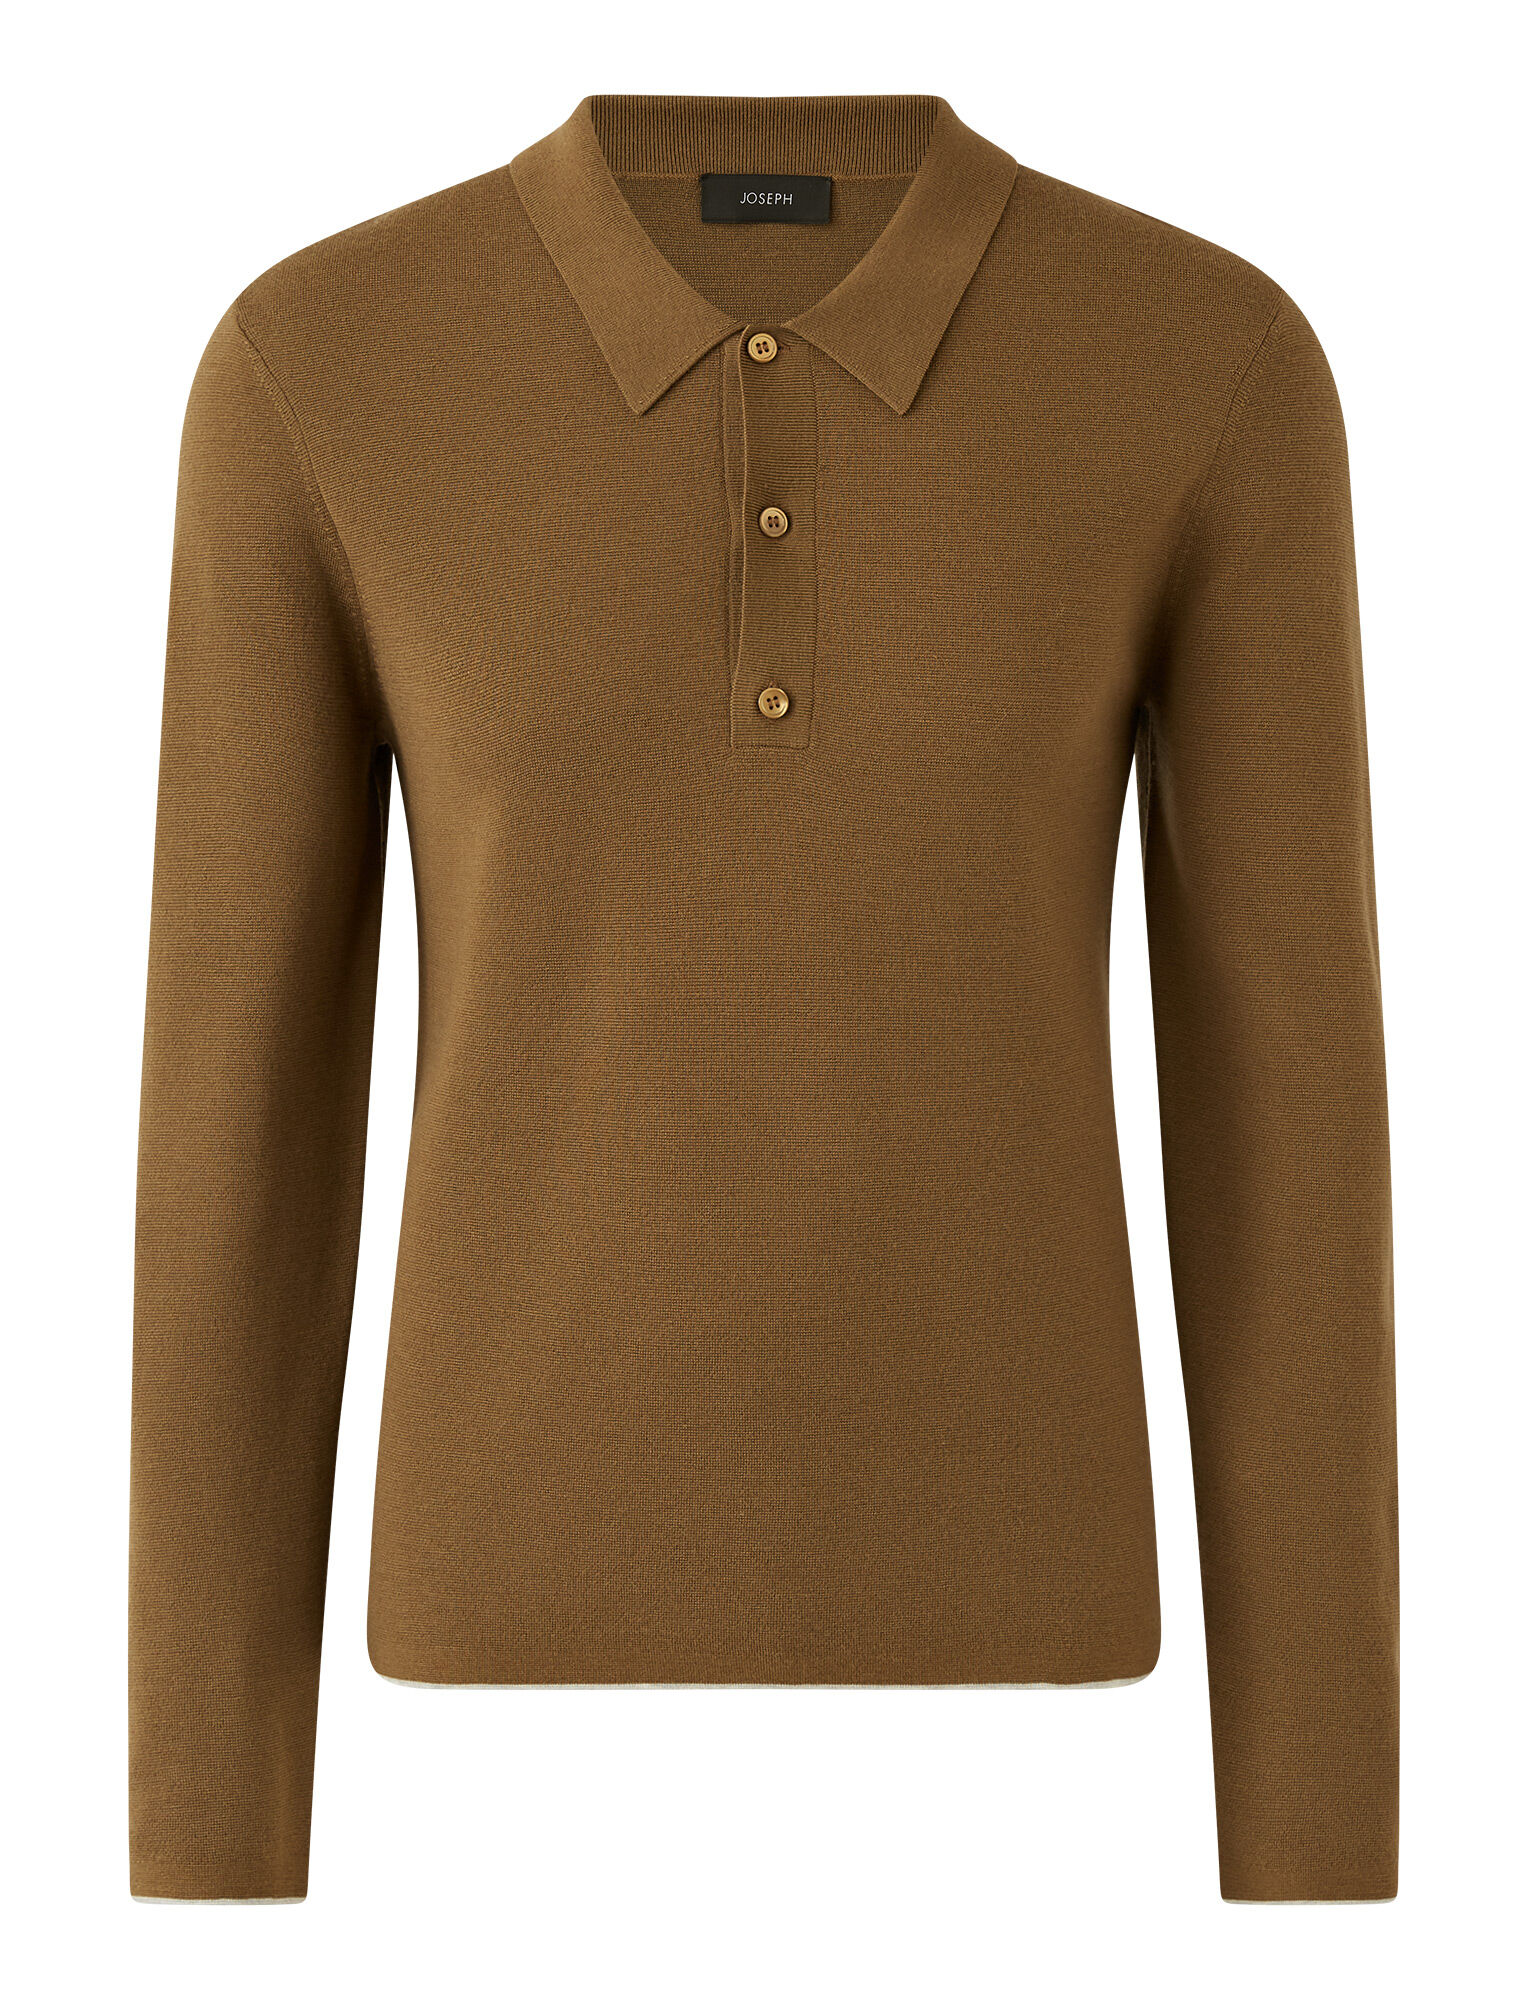 Joseph, Polo Fine Milano Knit, in TOBACCO